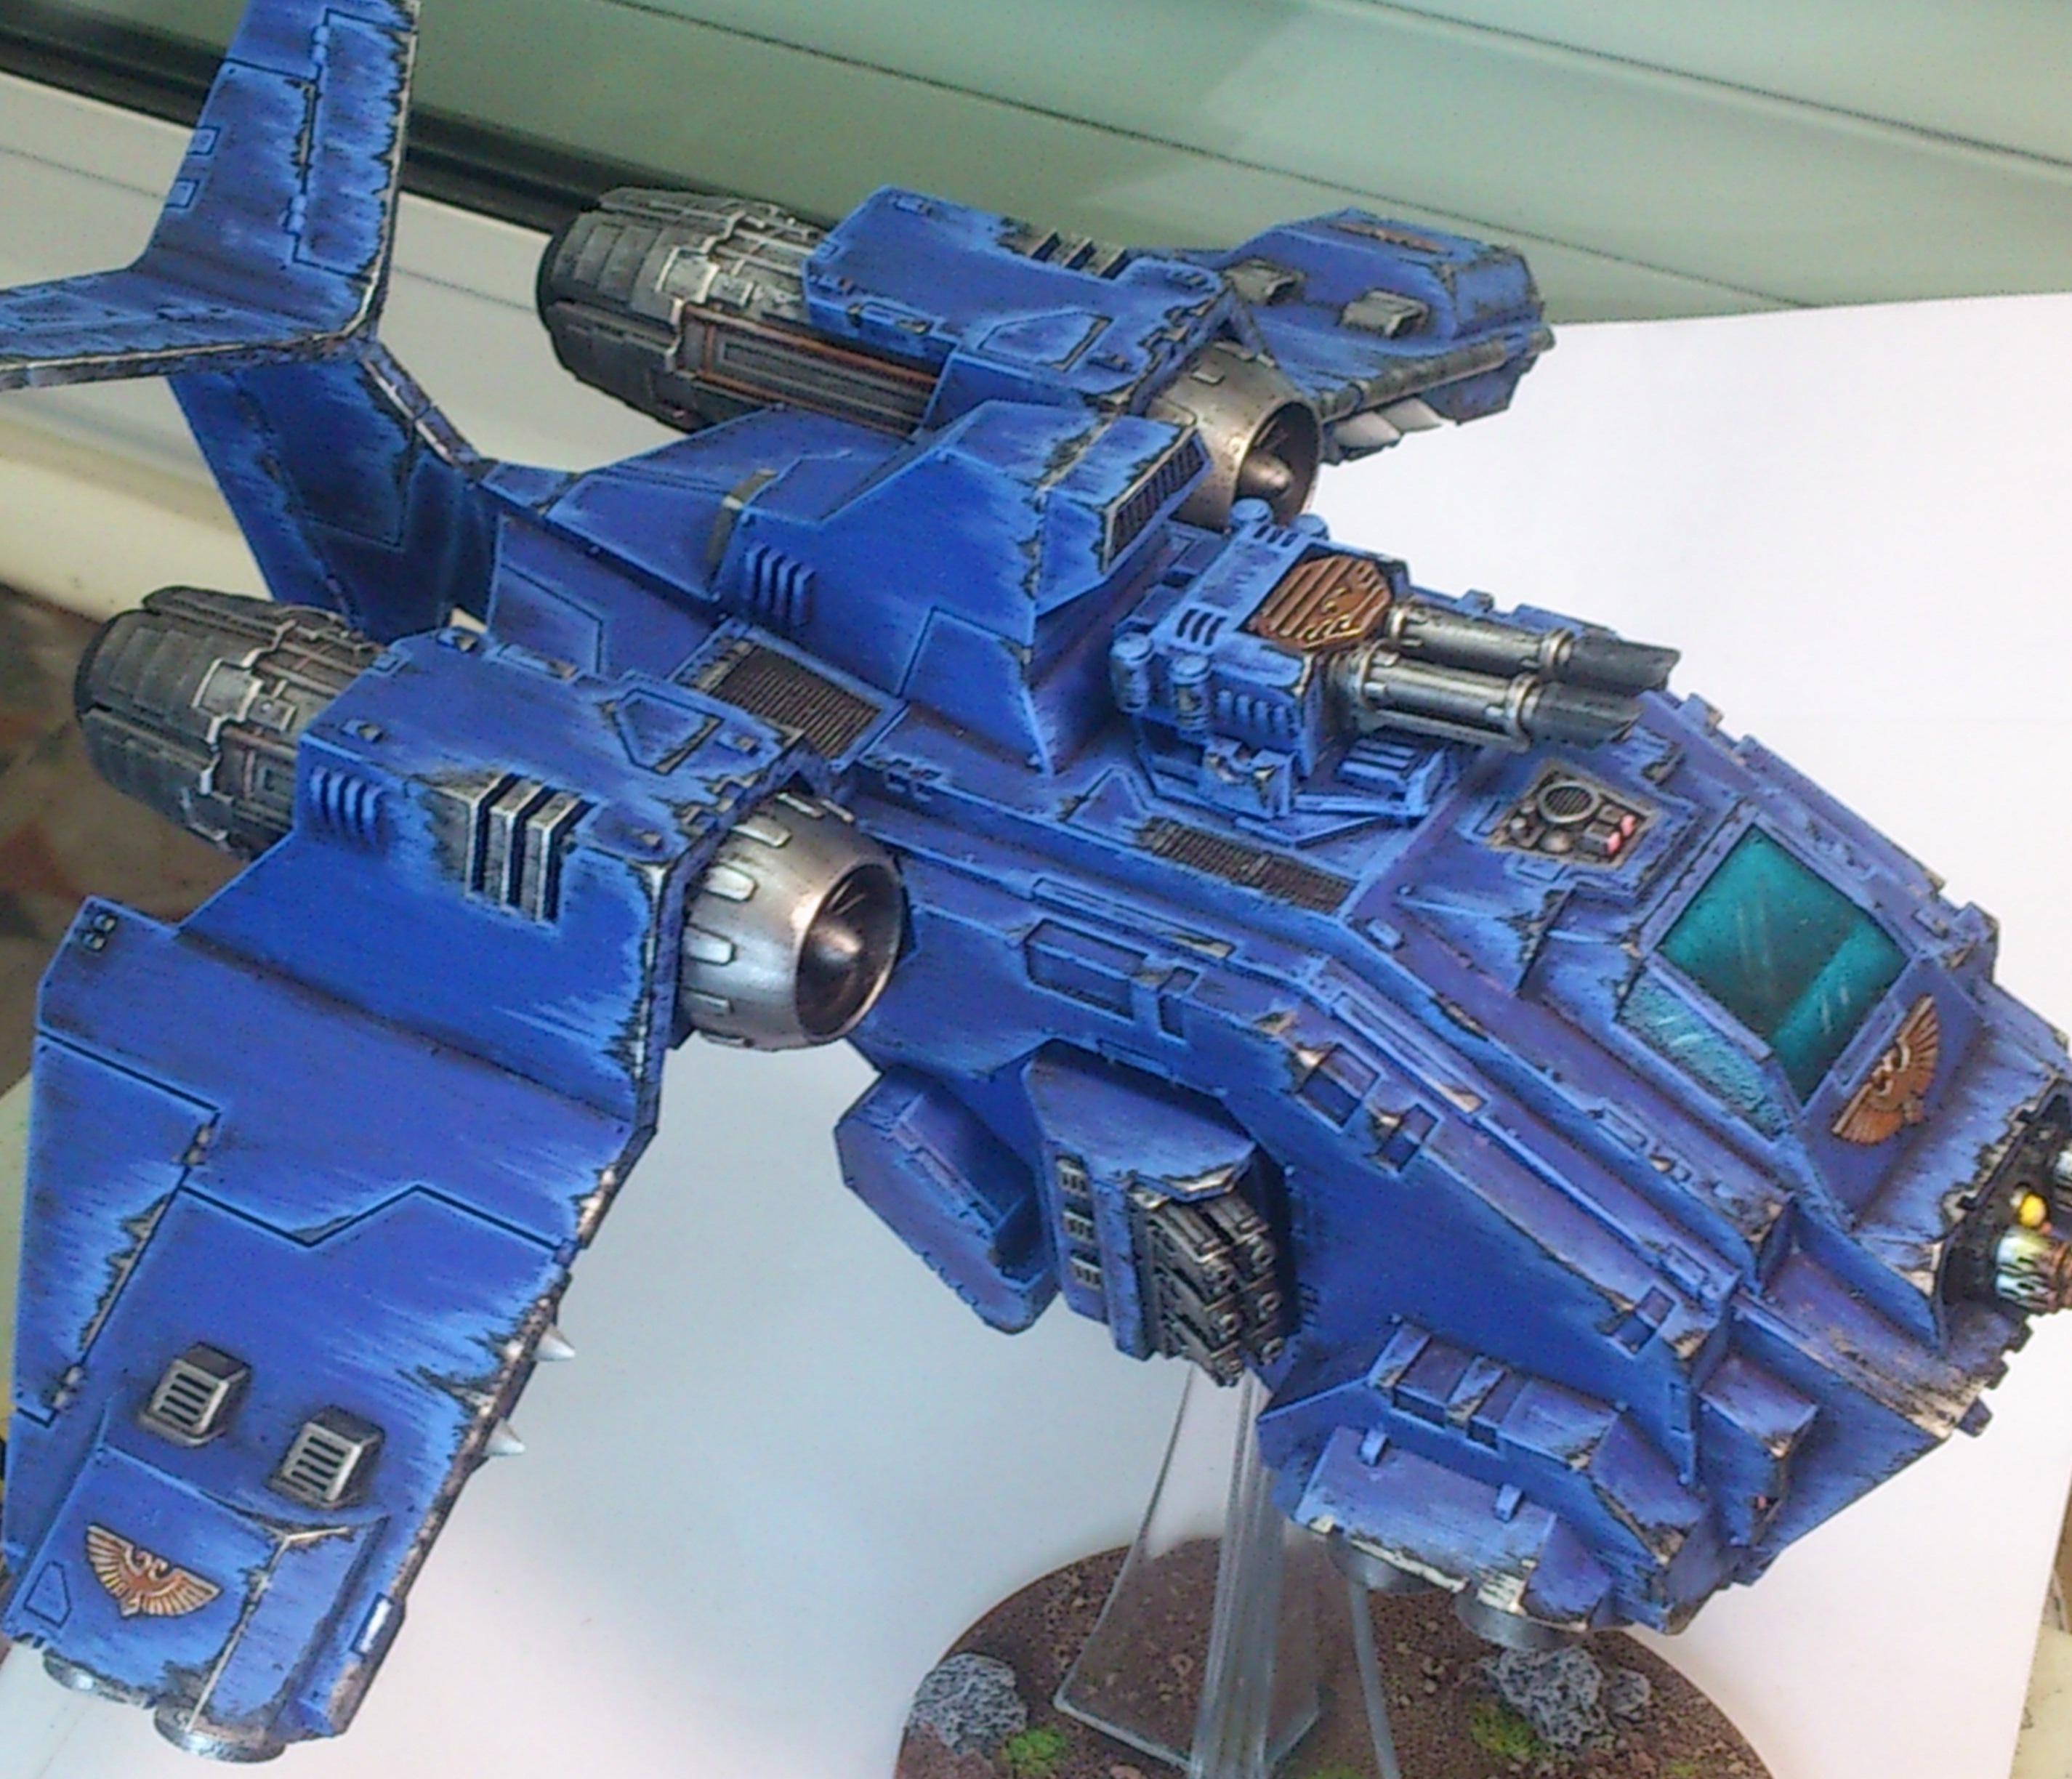 Attack Flyer, Canopy, Chipping, Effect, Flyer, Flying, Plane, Space Marines, Speed, Stormraven, Ultramarines, Utra, Vehicle, Warhammer 40,000